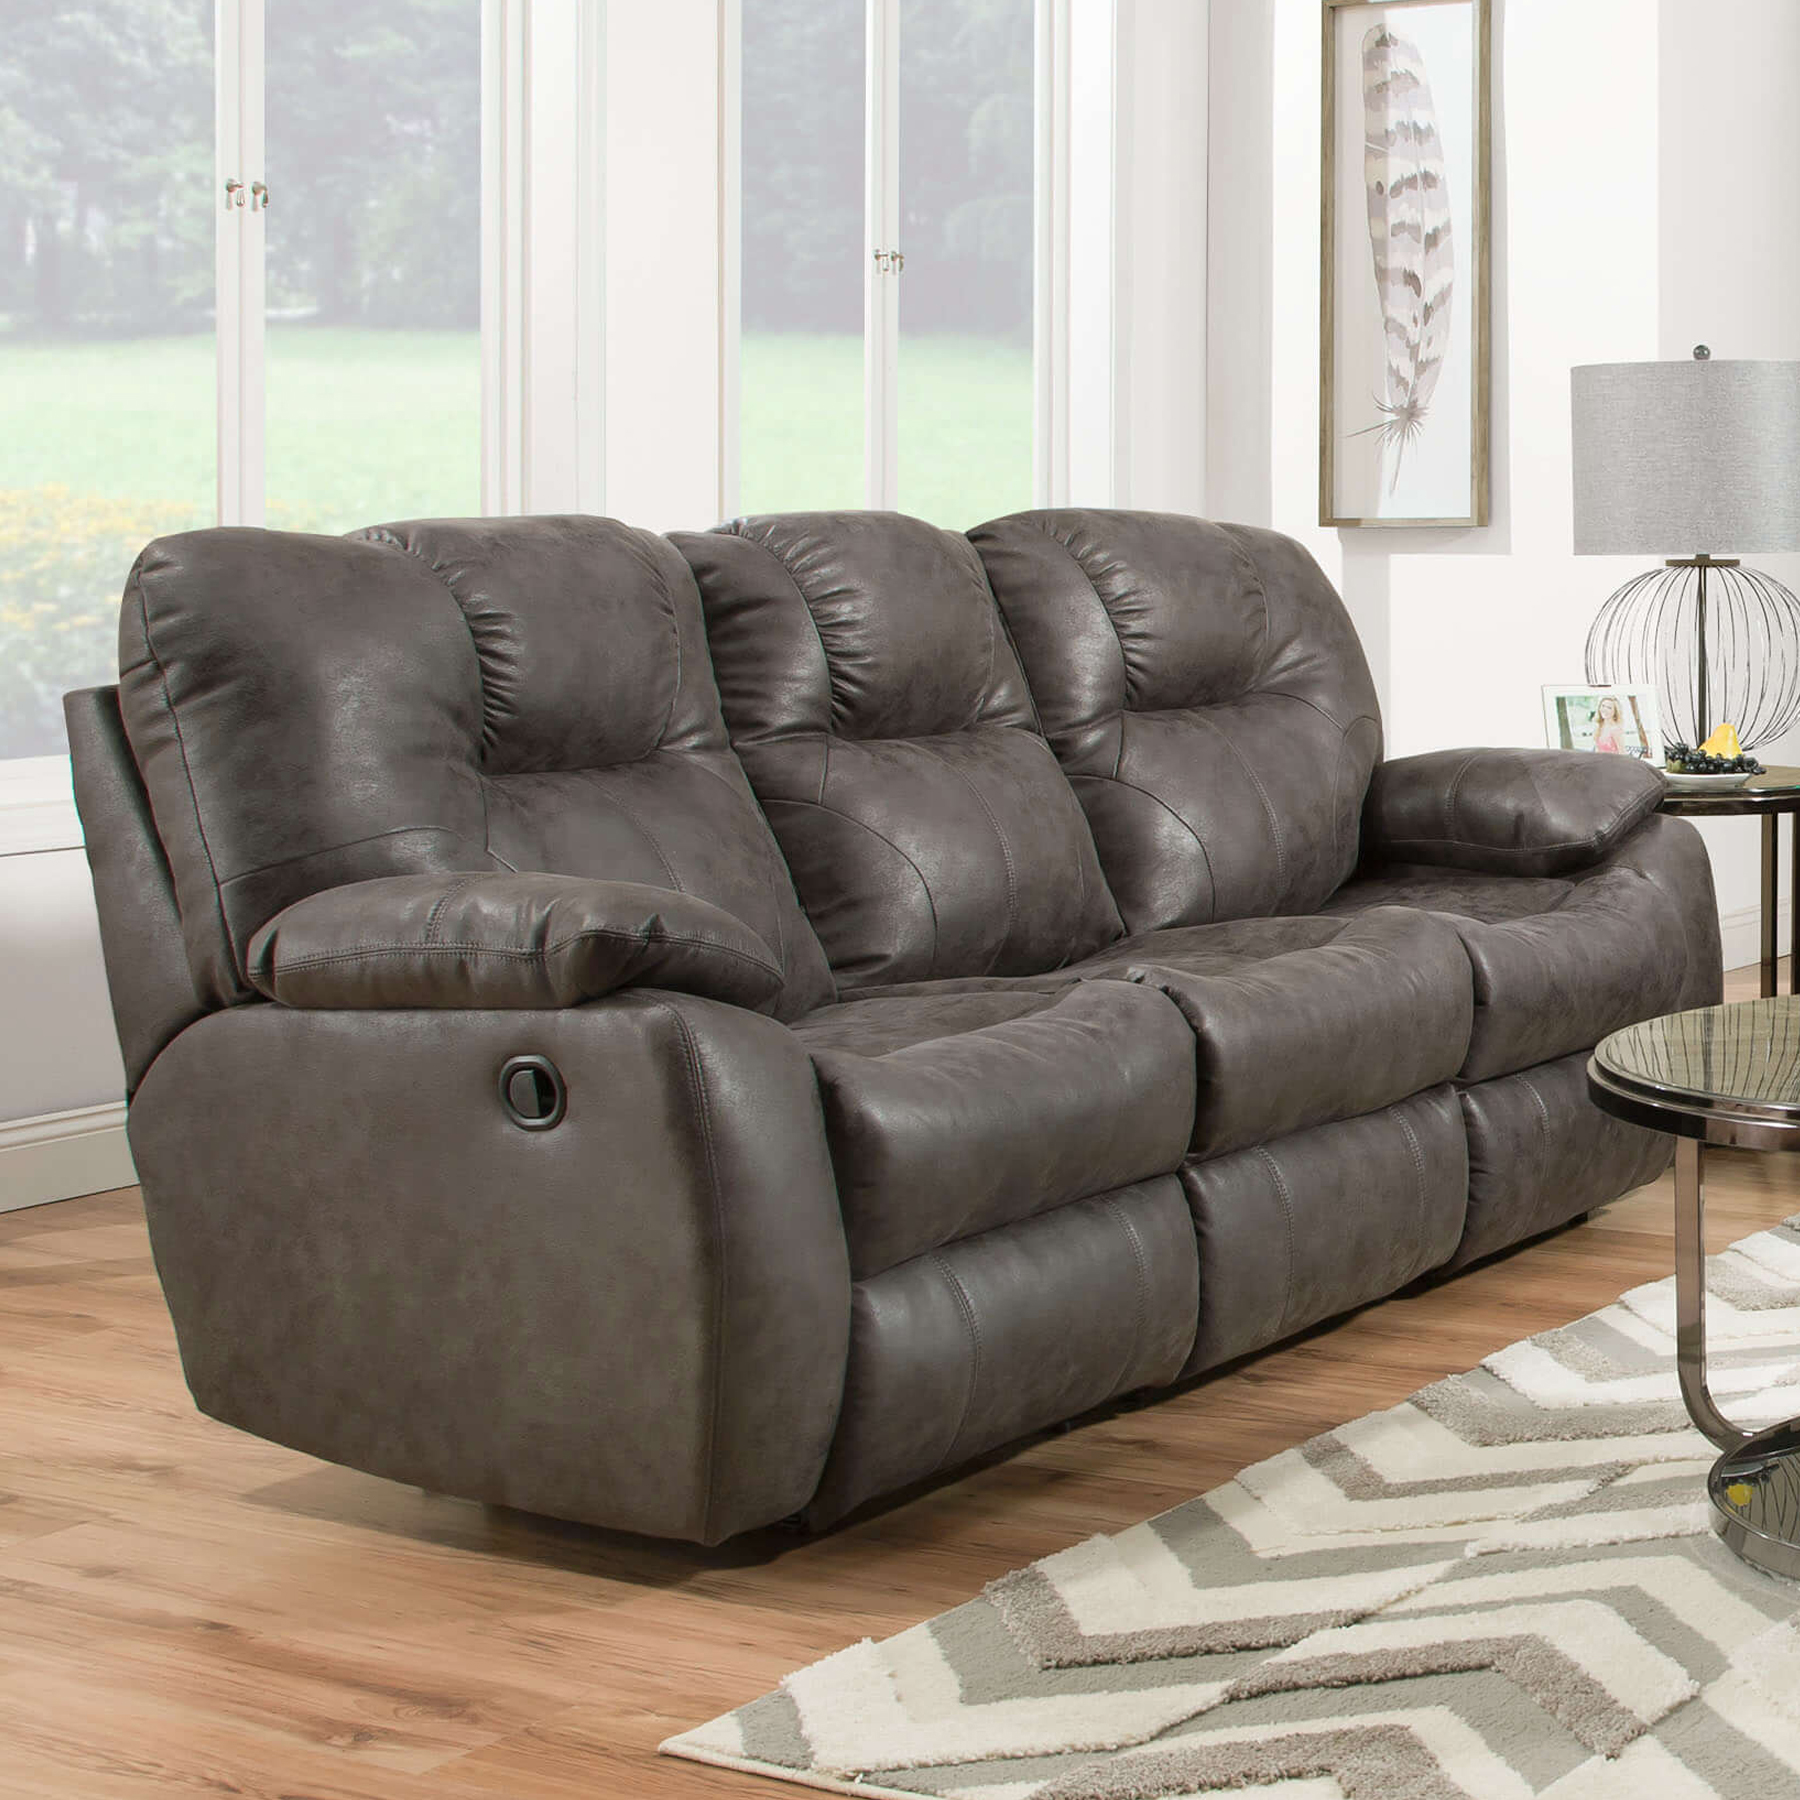 Awe Inspiring Avalon 838 Reclining Sofa 140 Fabrics And Sofas And Gmtry Best Dining Table And Chair Ideas Images Gmtryco